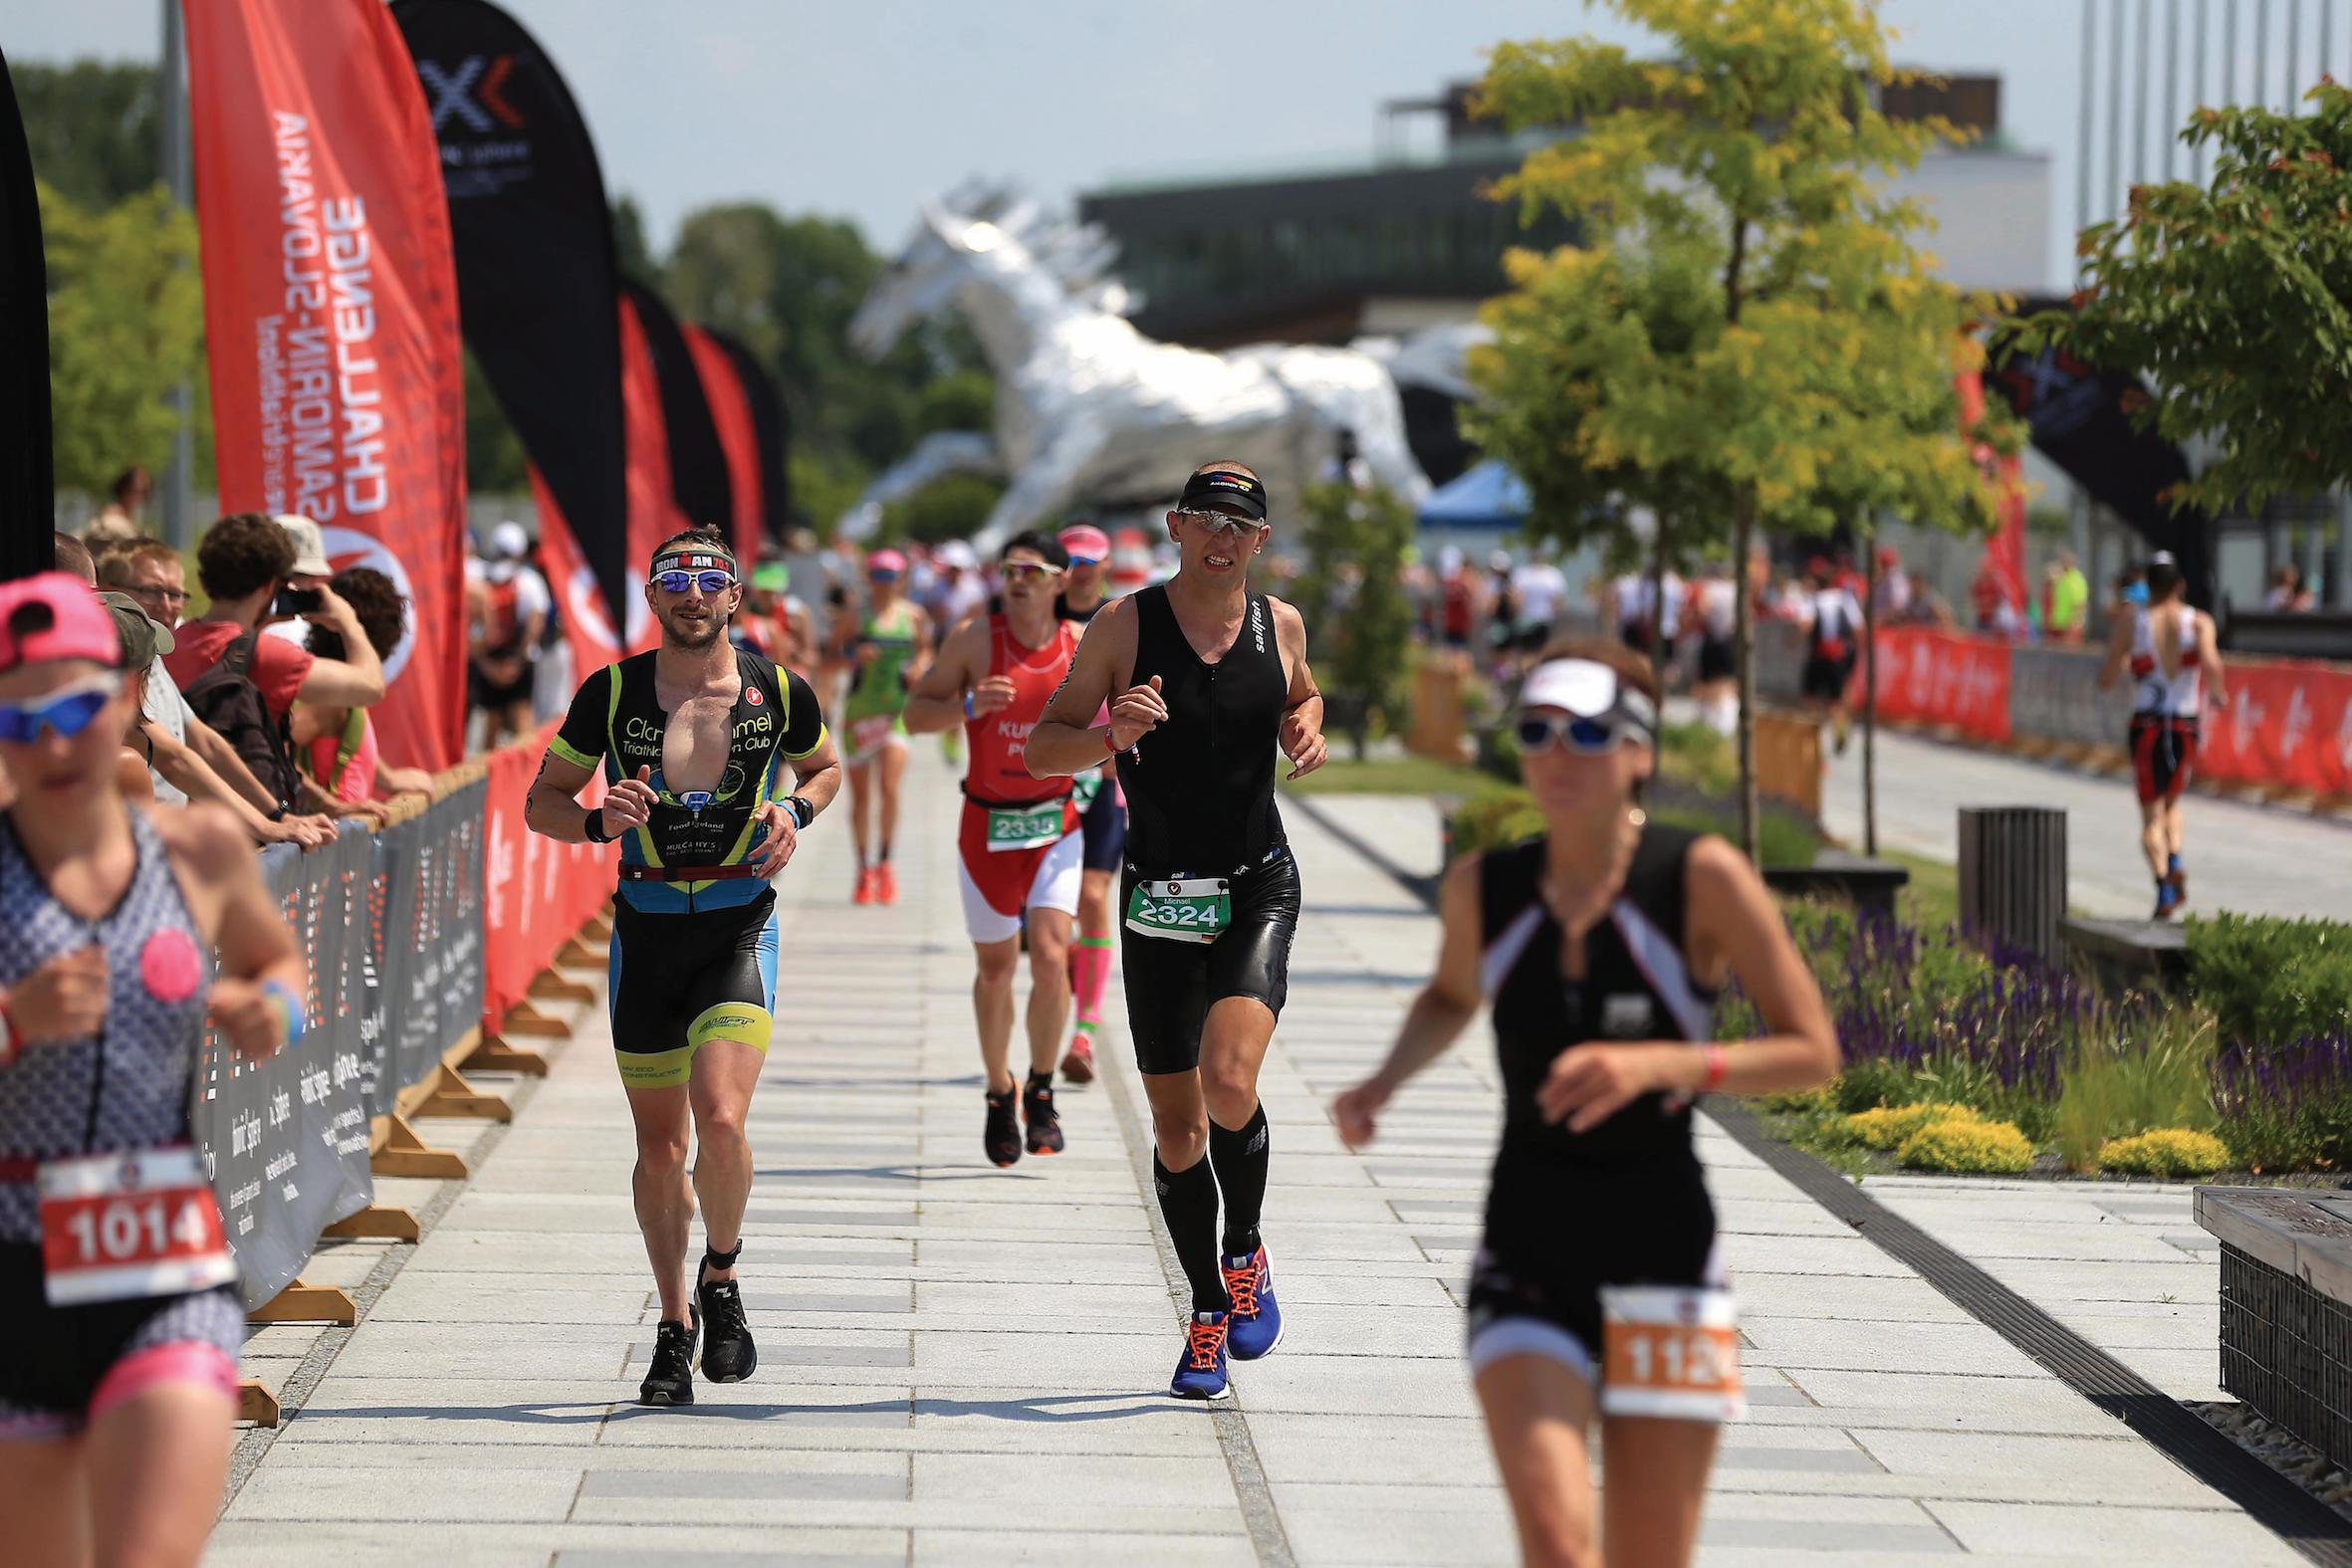 Athletes on the run course during The Championship Challenge Triathlon on June 3, 2017 in Bratislava, Slovakia. (Photo by Stephen Pond/Getty Images for Challenge Triathlon)